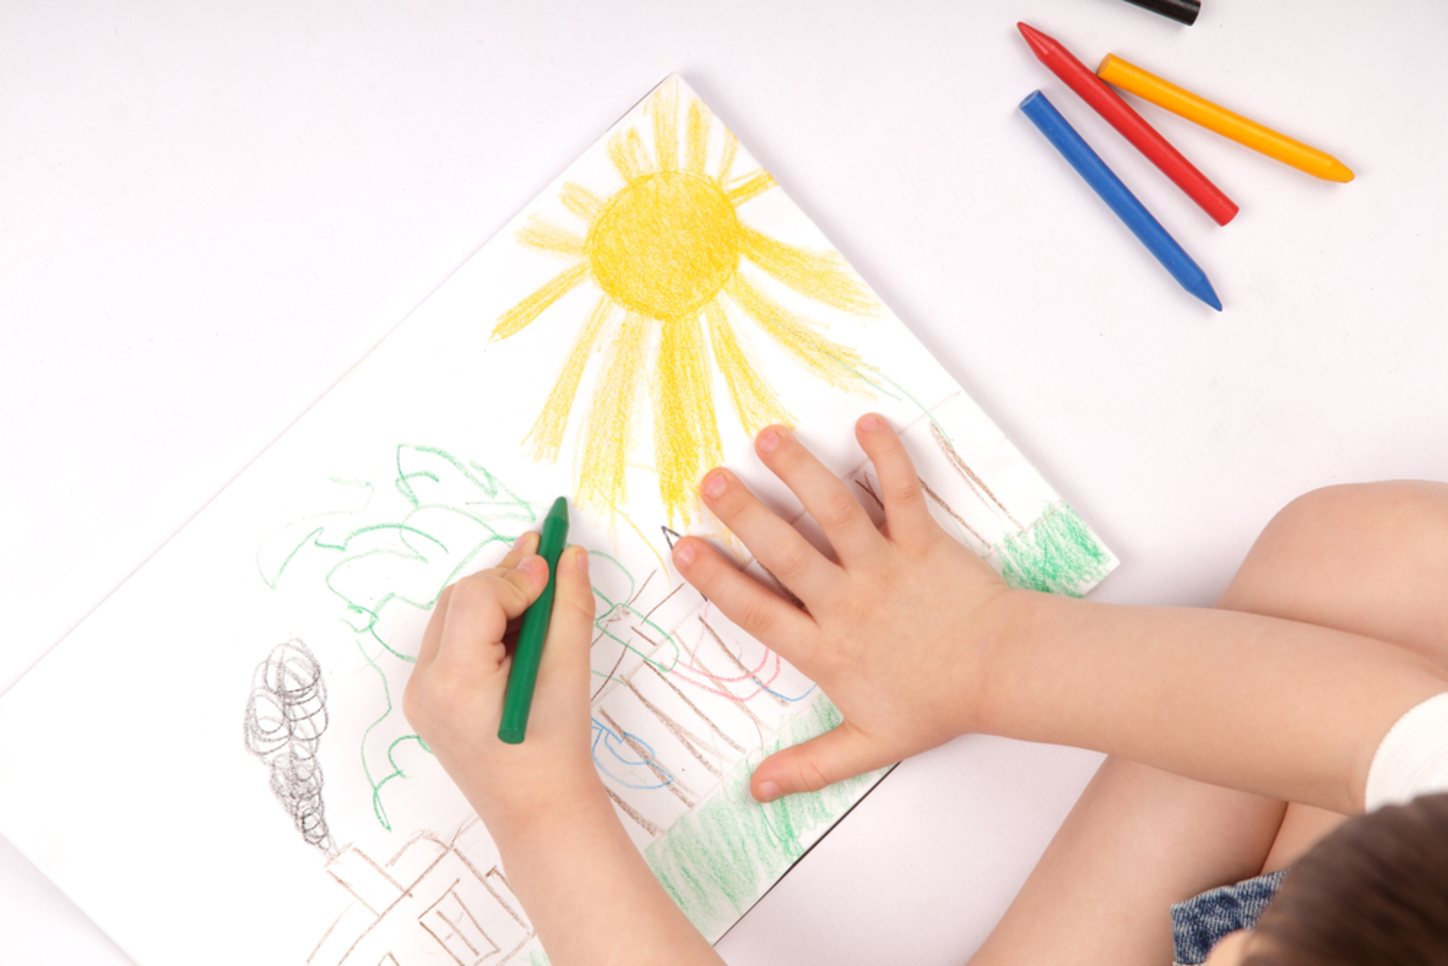 Dinosaur Pictures for Kids - Free Images, Photos, Drawings Pictures of kids drawings